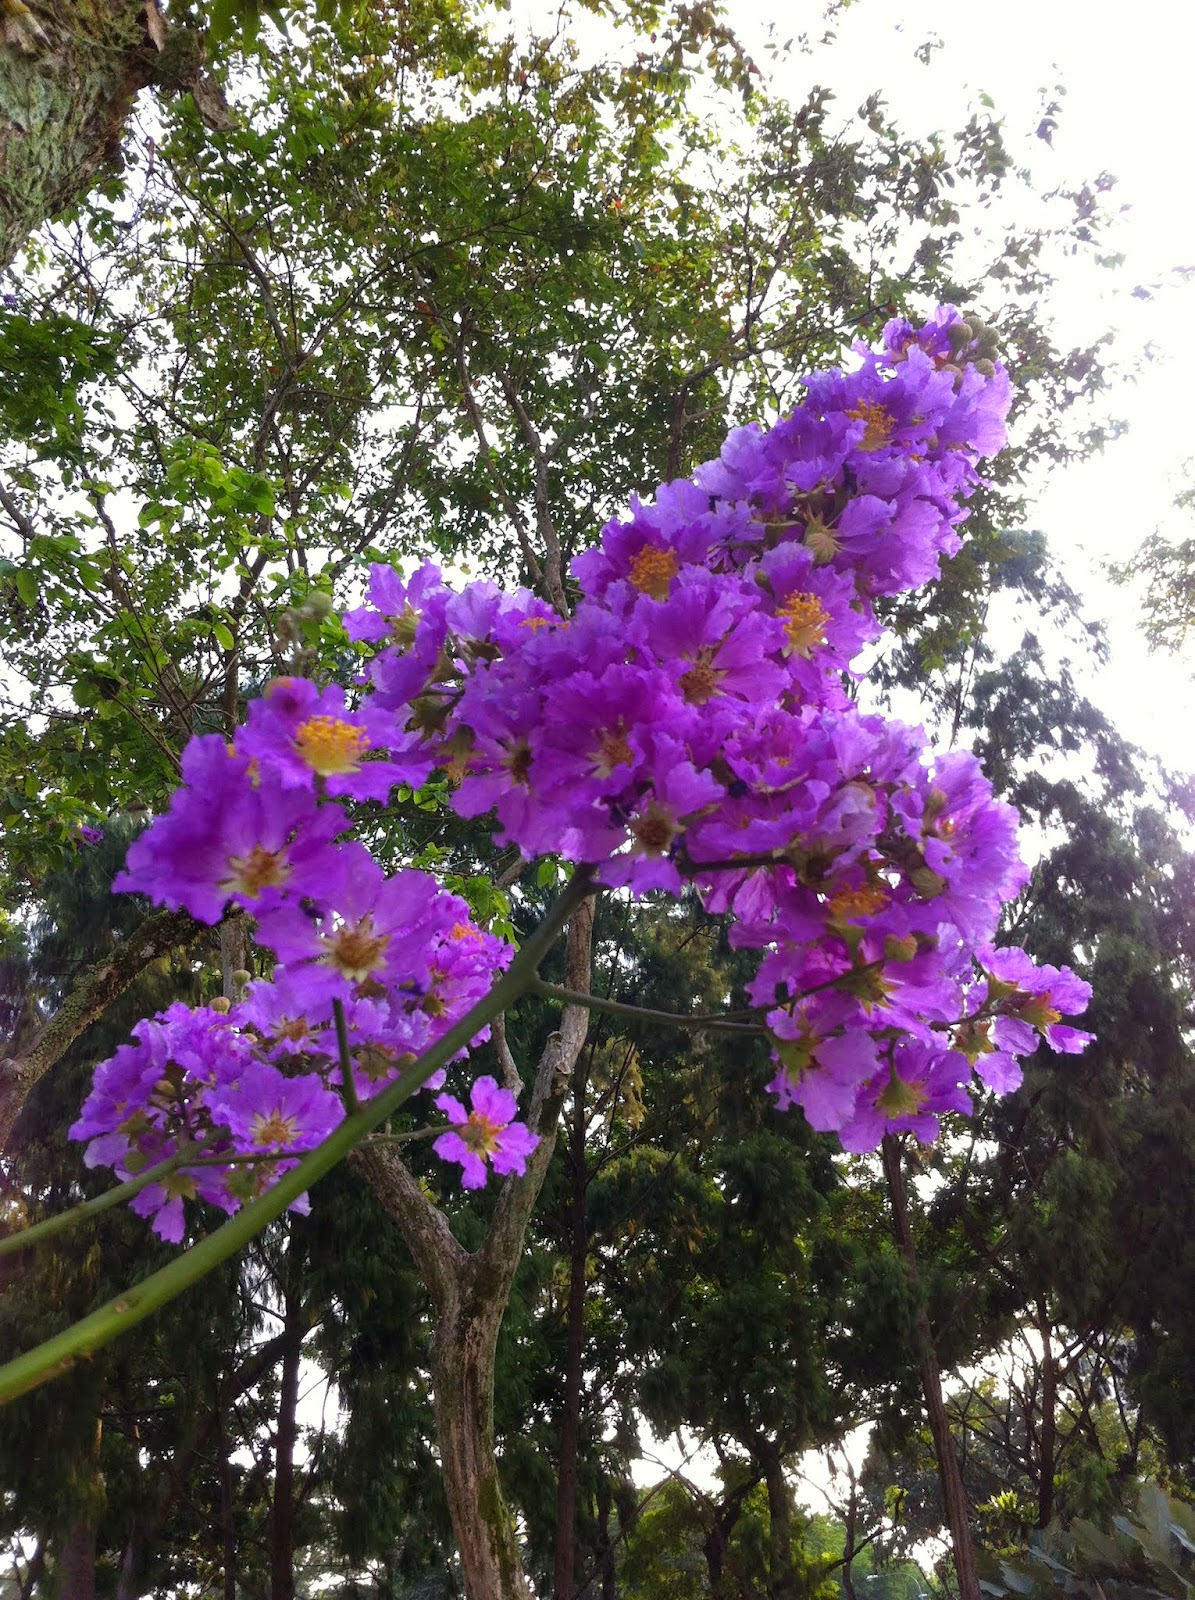 Singapore Plants Lover Purple Flowers Tree in Bishan Park